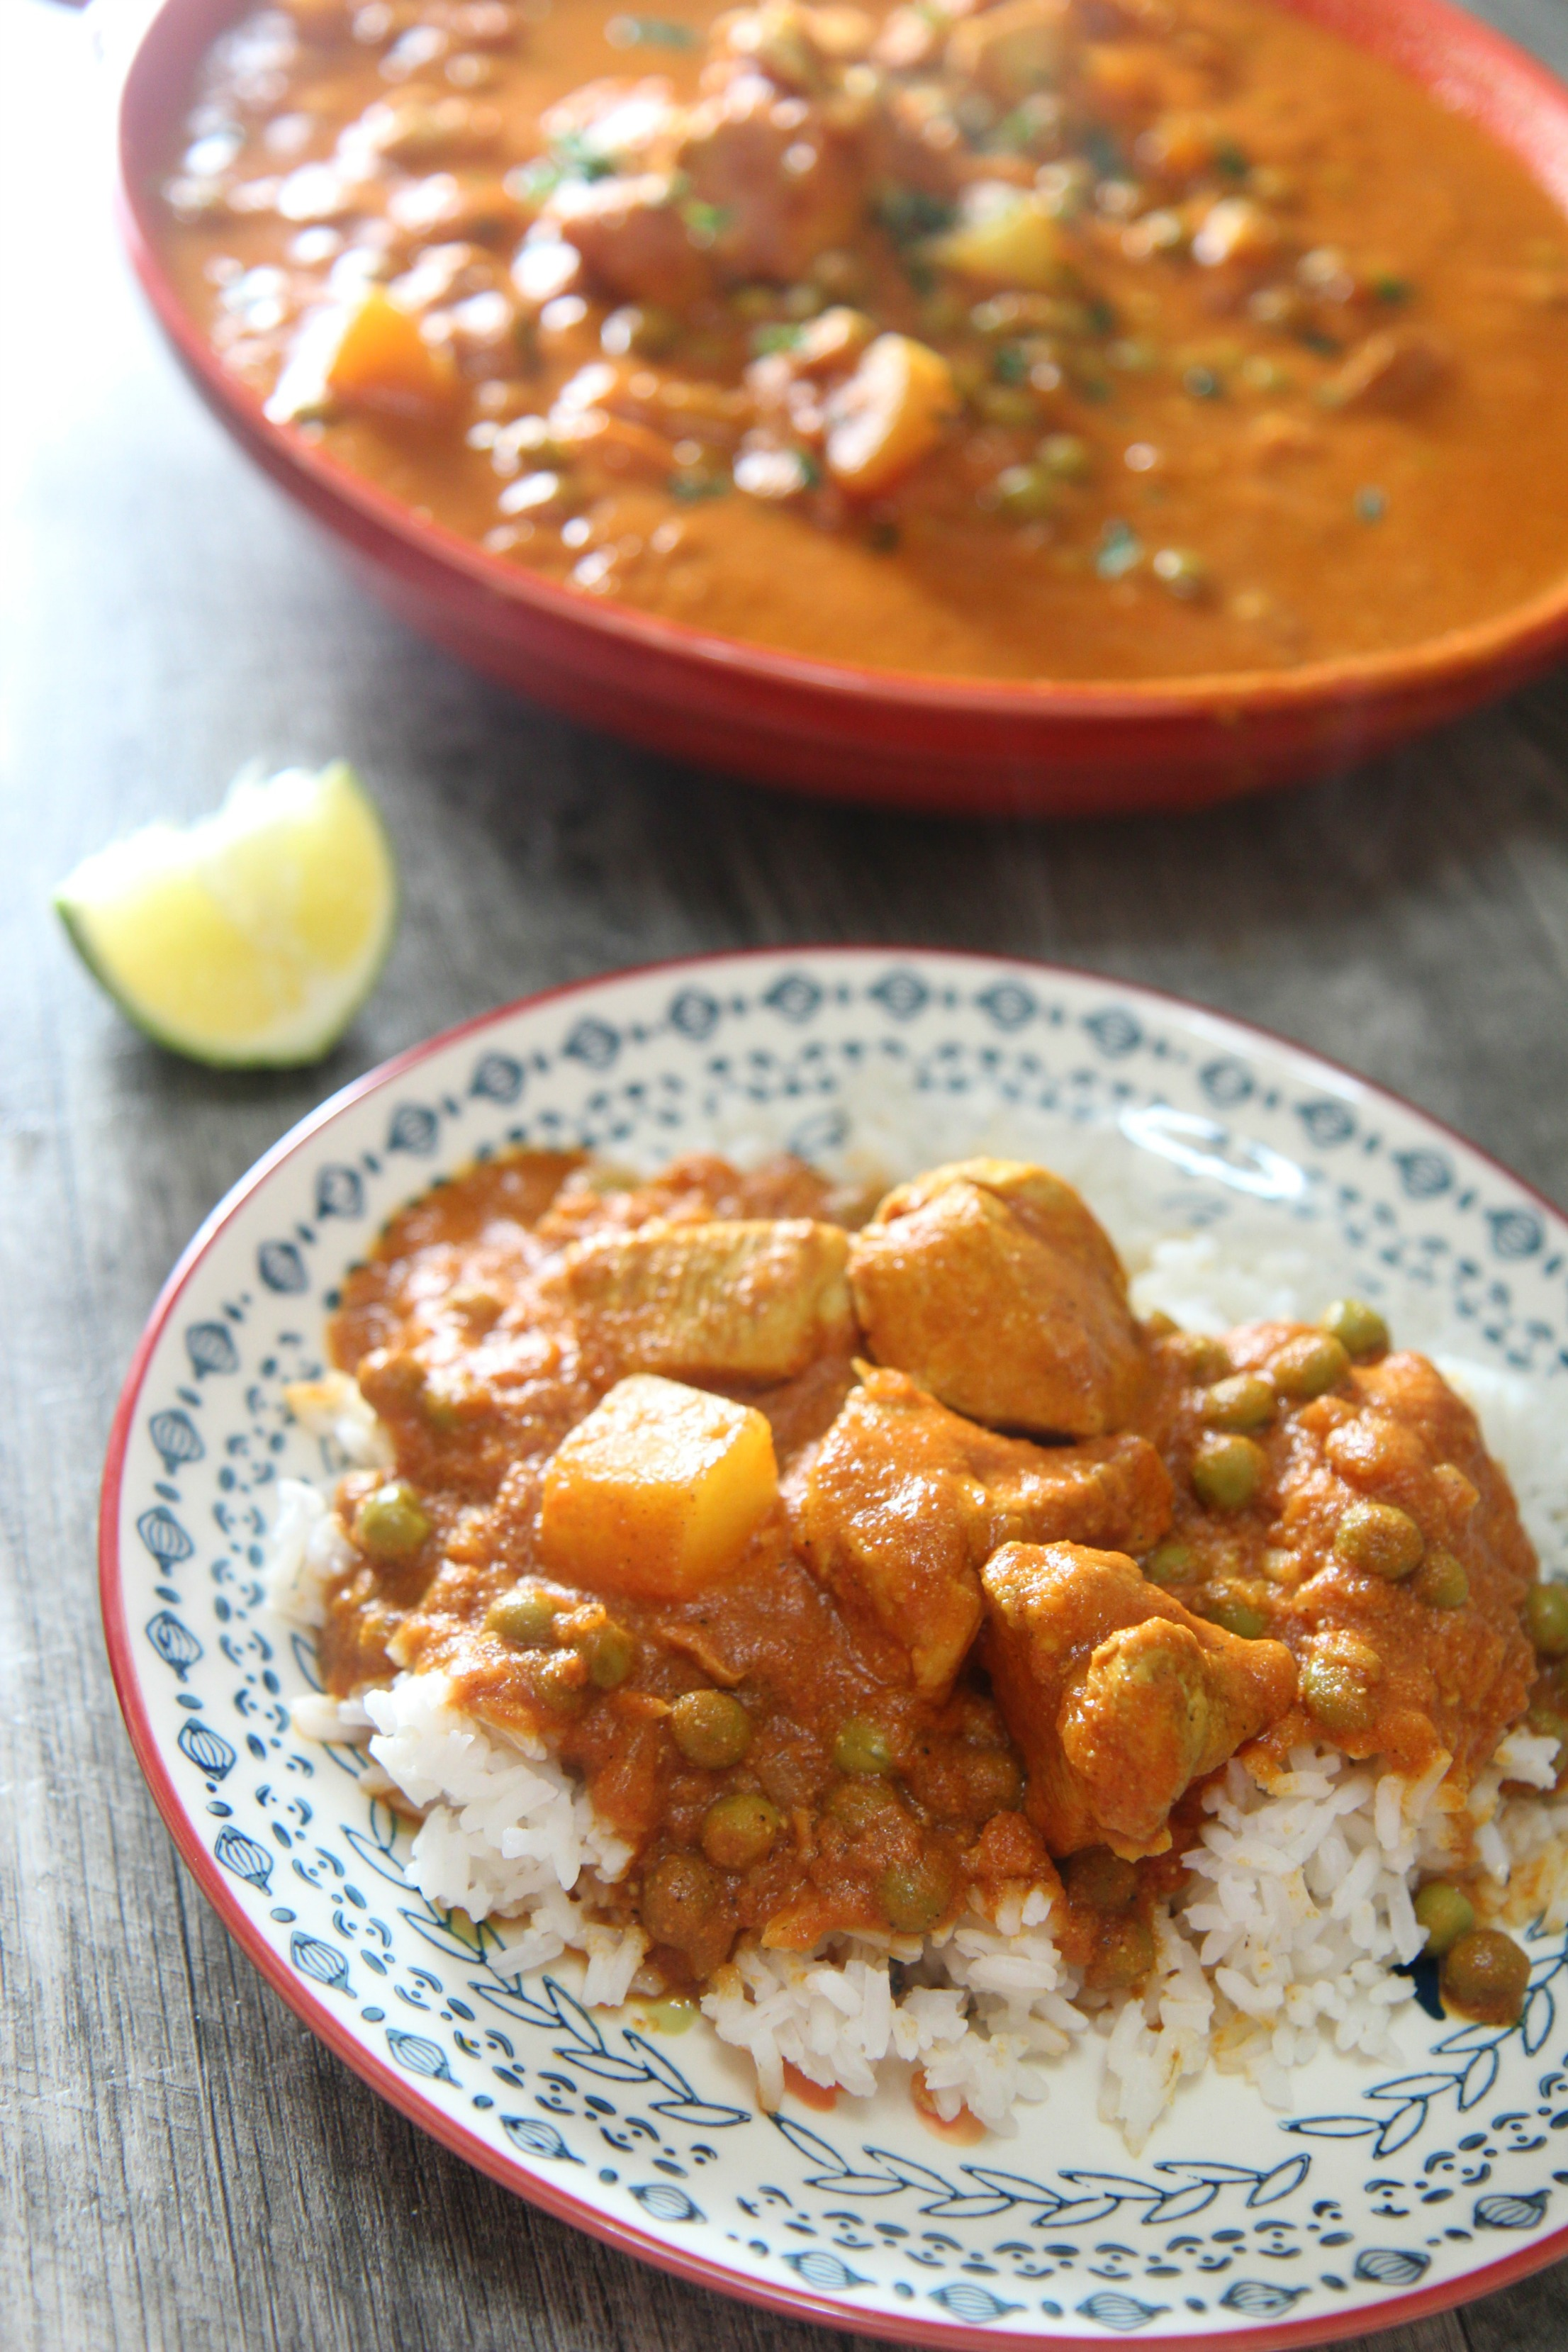 Rich, sweet and only slightly spicy, this curry is a crowd pleaser.